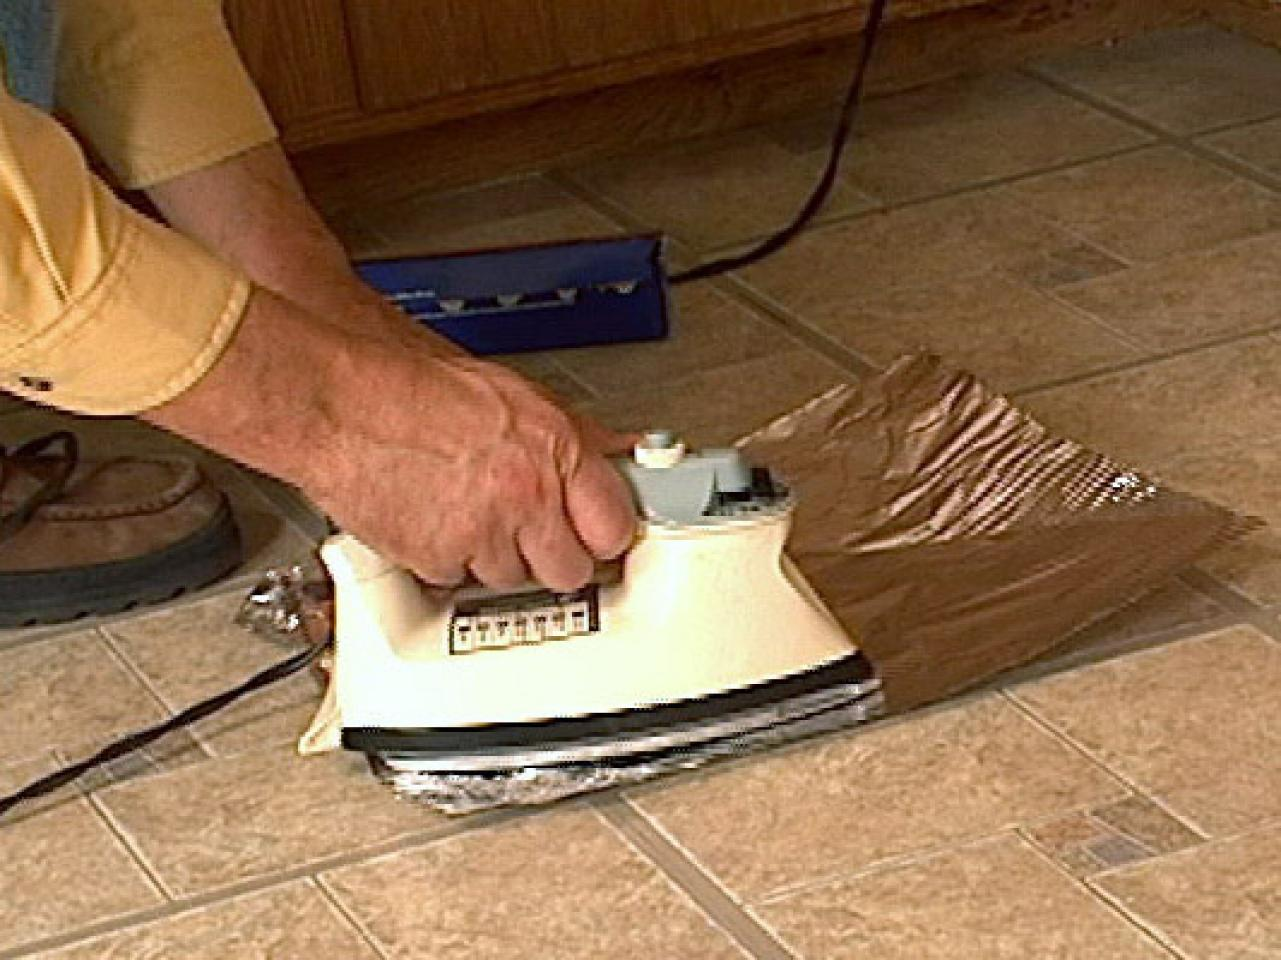 How To Fix Curling Vinyl Floor Tile Howtos DIY - How to repair bathroom floor tile